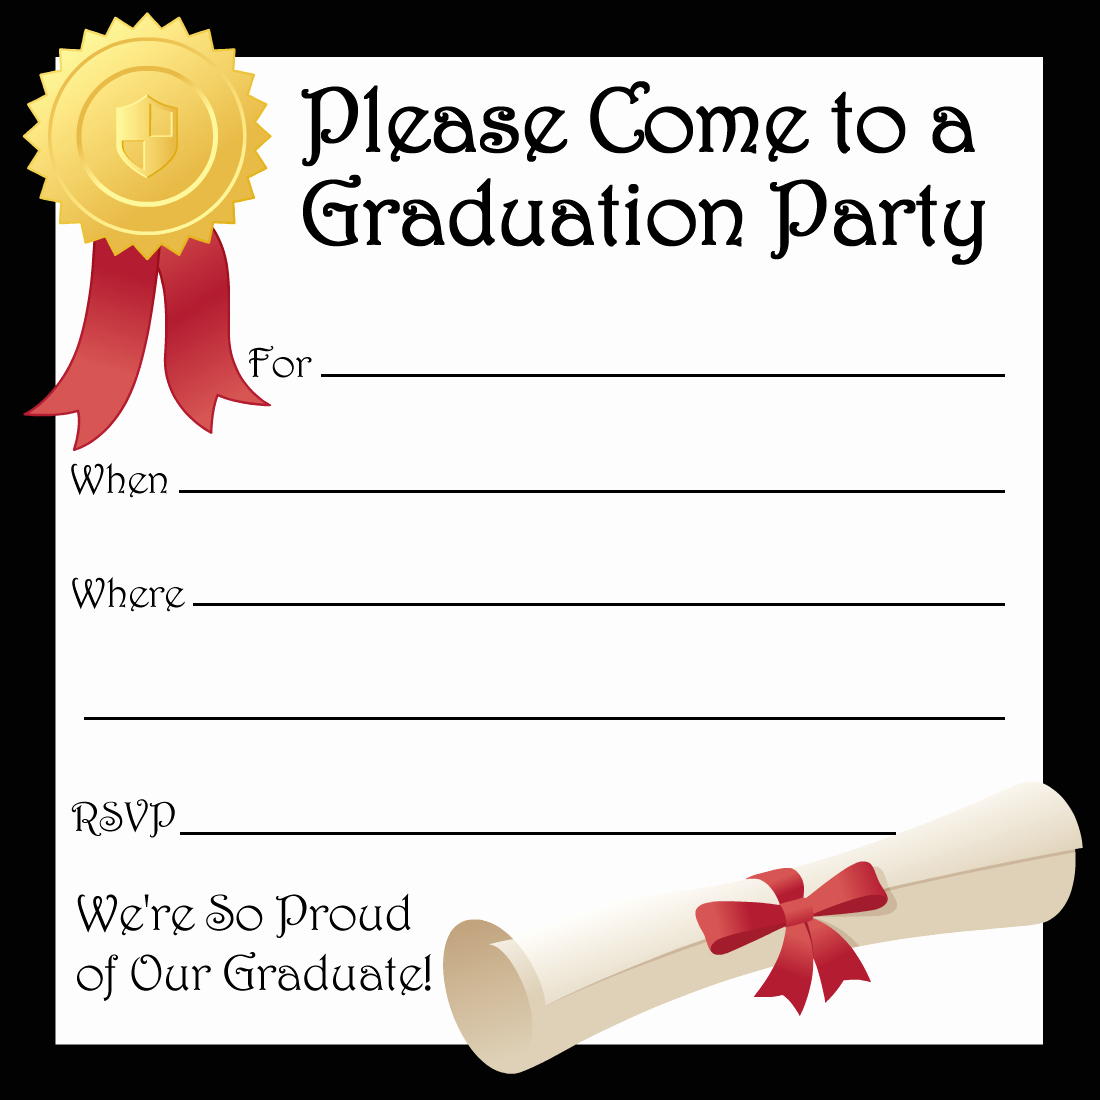 Graduation Party Invitation Templates New Free Printable Graduation Party Invitations